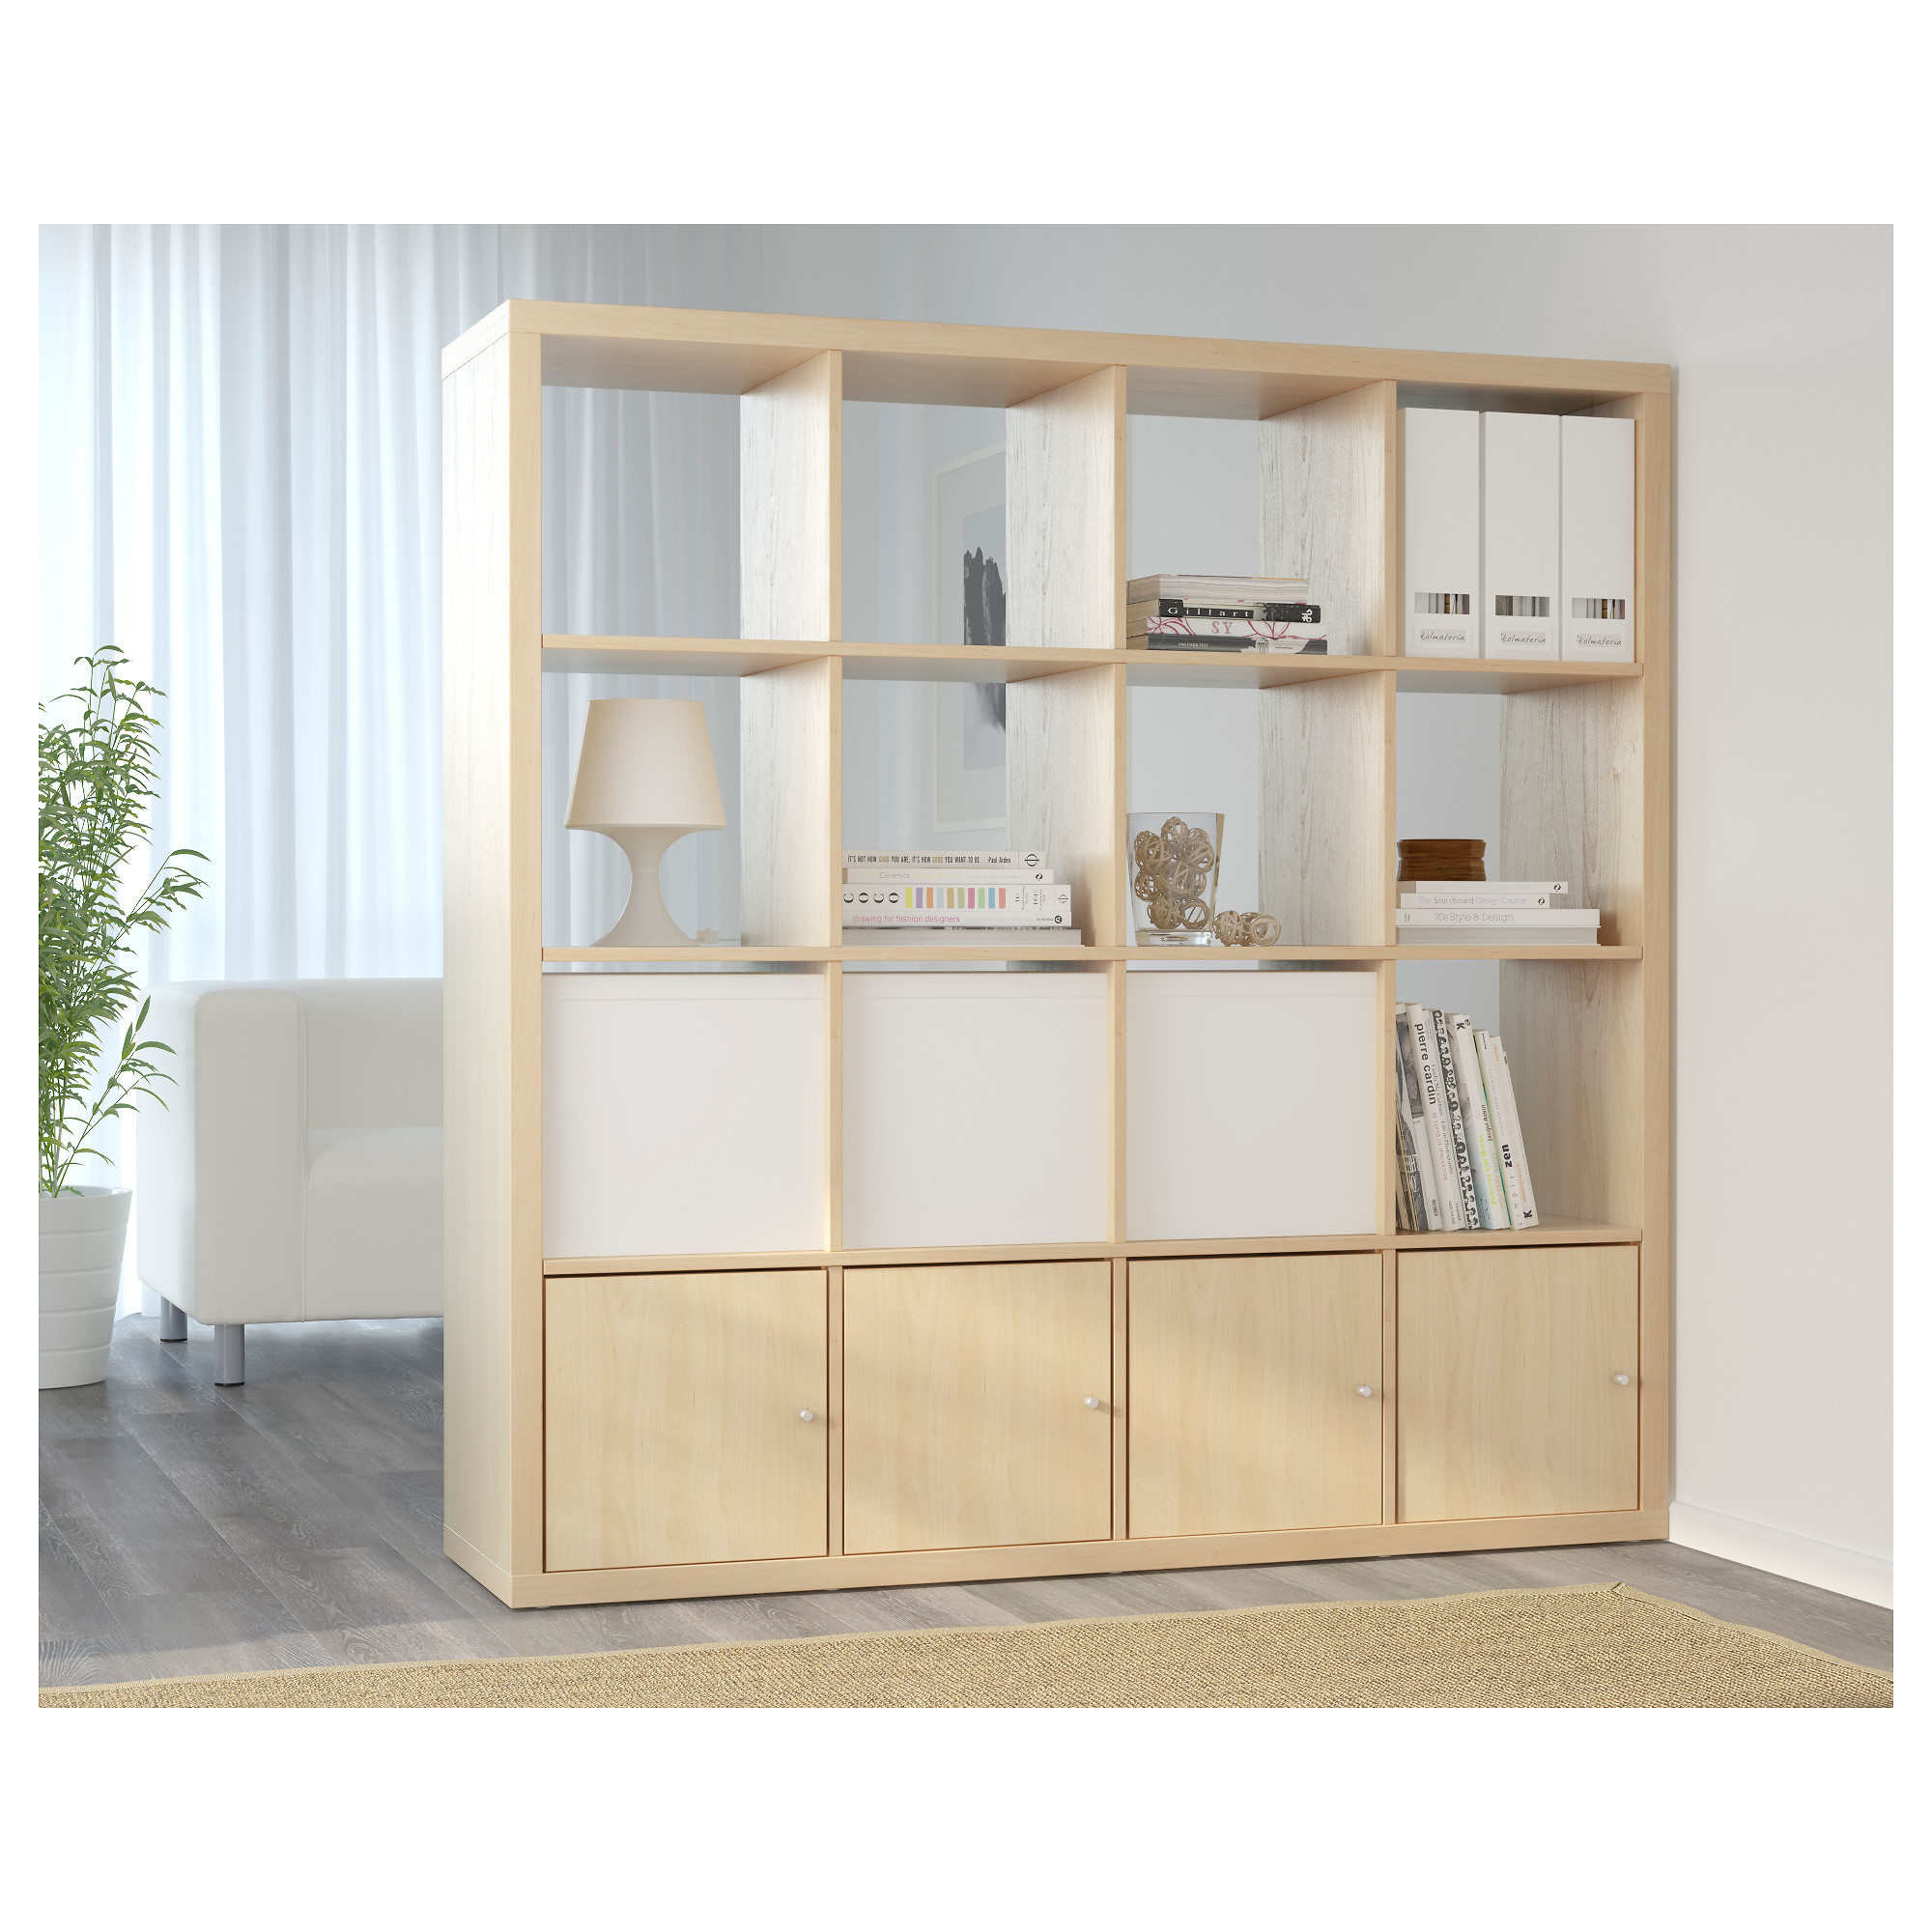 Living Room Shelving Unit kallax shelf unit - white - ikea